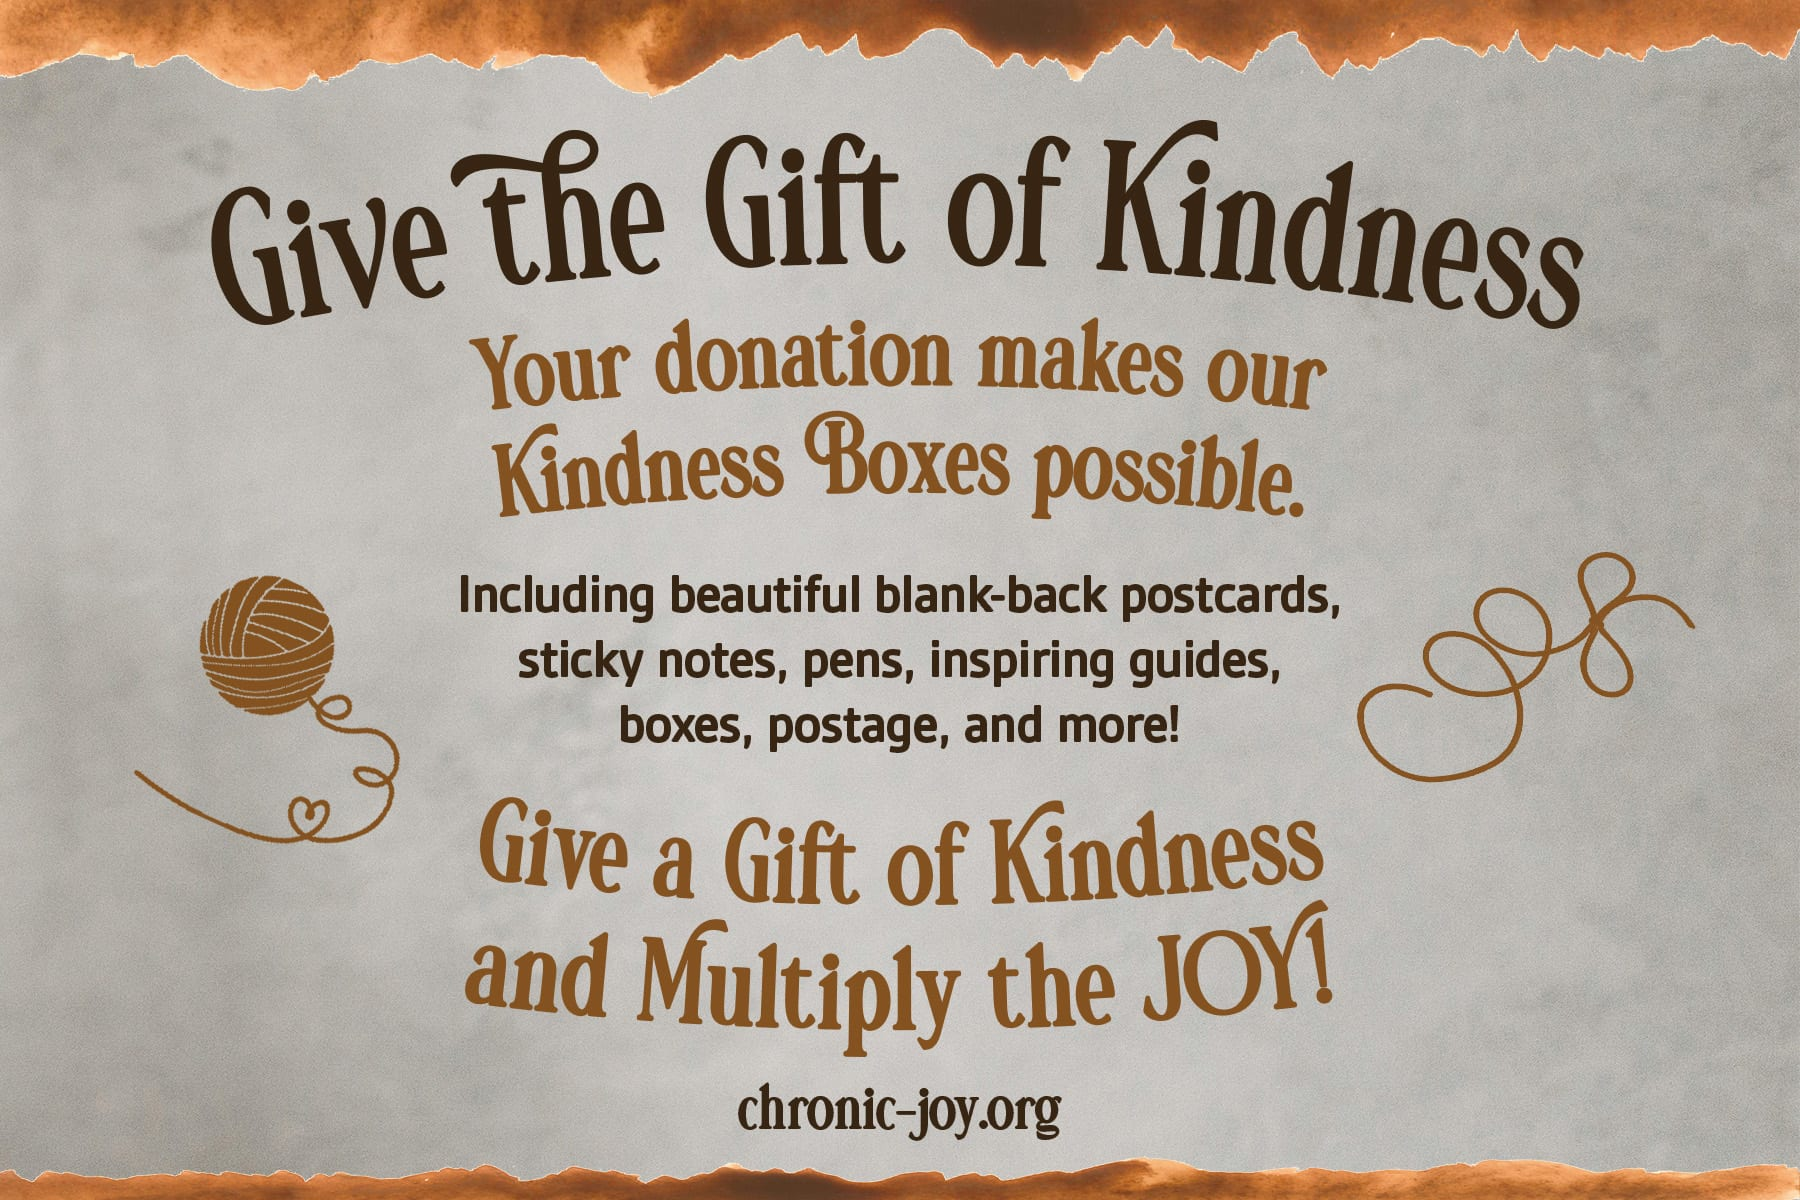 Give the Gift of Kindness! Your donation makes our Kindness Boxes possible, including beautiful blank-back postcards, sticky notes, pens, inspiring guides, boxes, postage, and more! Give a Gift of Kindness and Multiply the Joy!